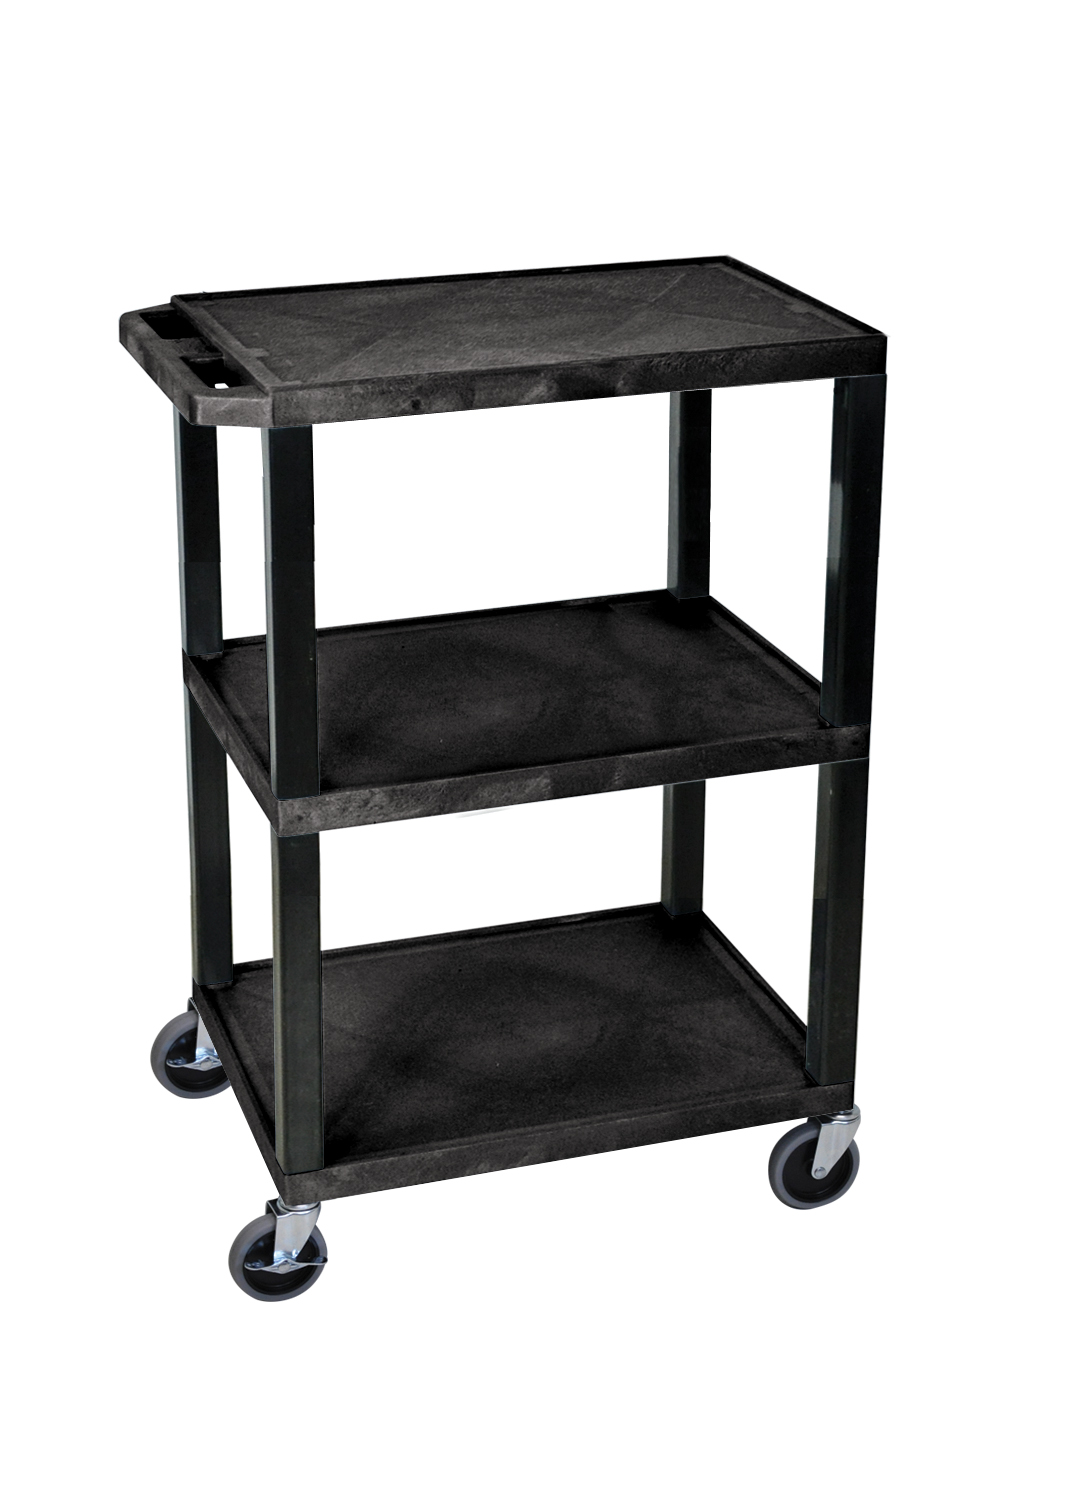 Plastic Utility Cart with 3 flat shelves